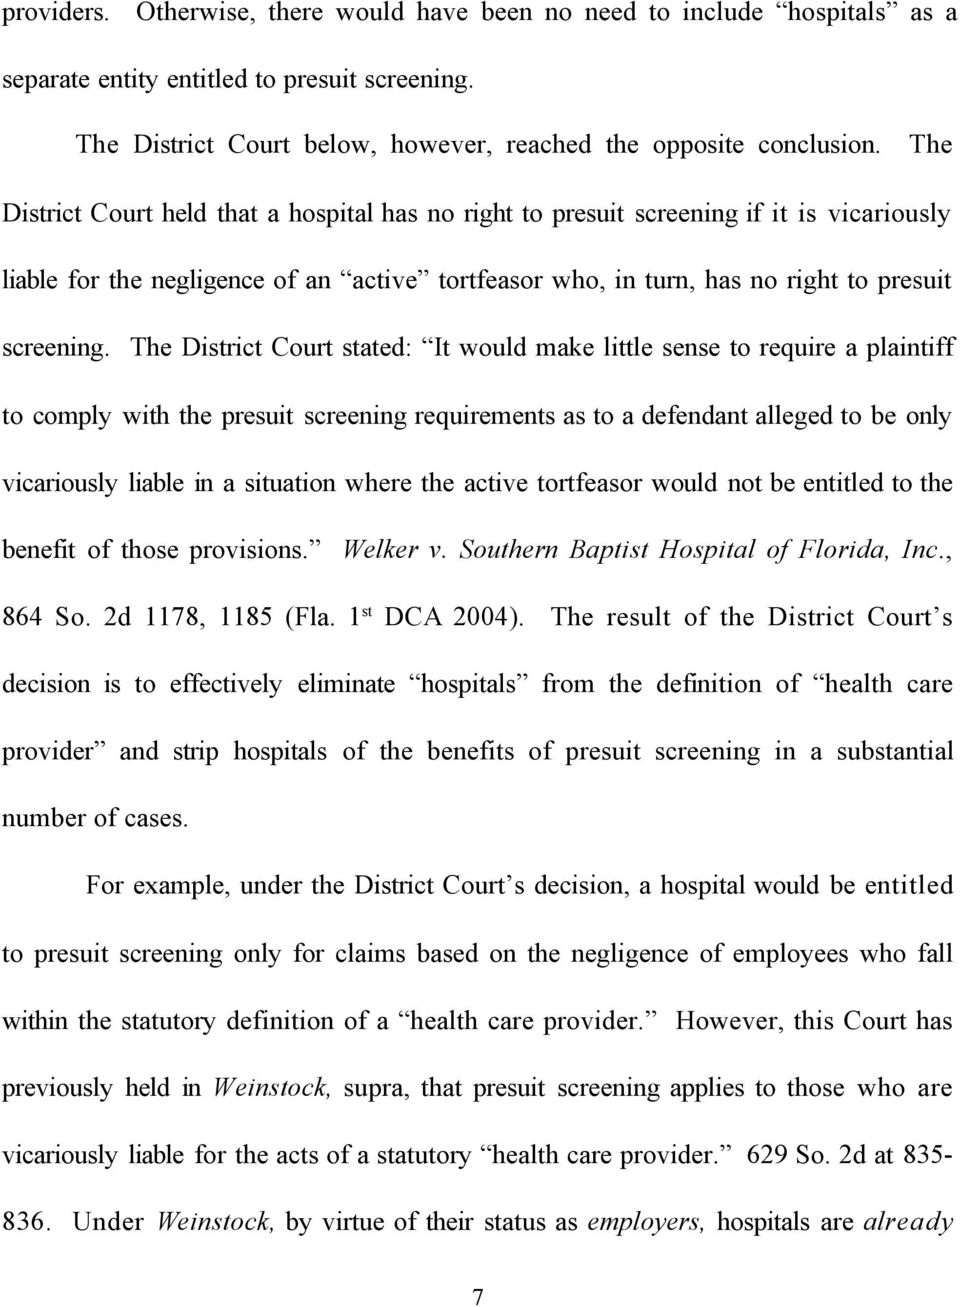 The District Court stated: It would make little sense to require a plaintiff to comply with the presuit screening requirements as to a defendant alleged to be only vicariously liable in a situation